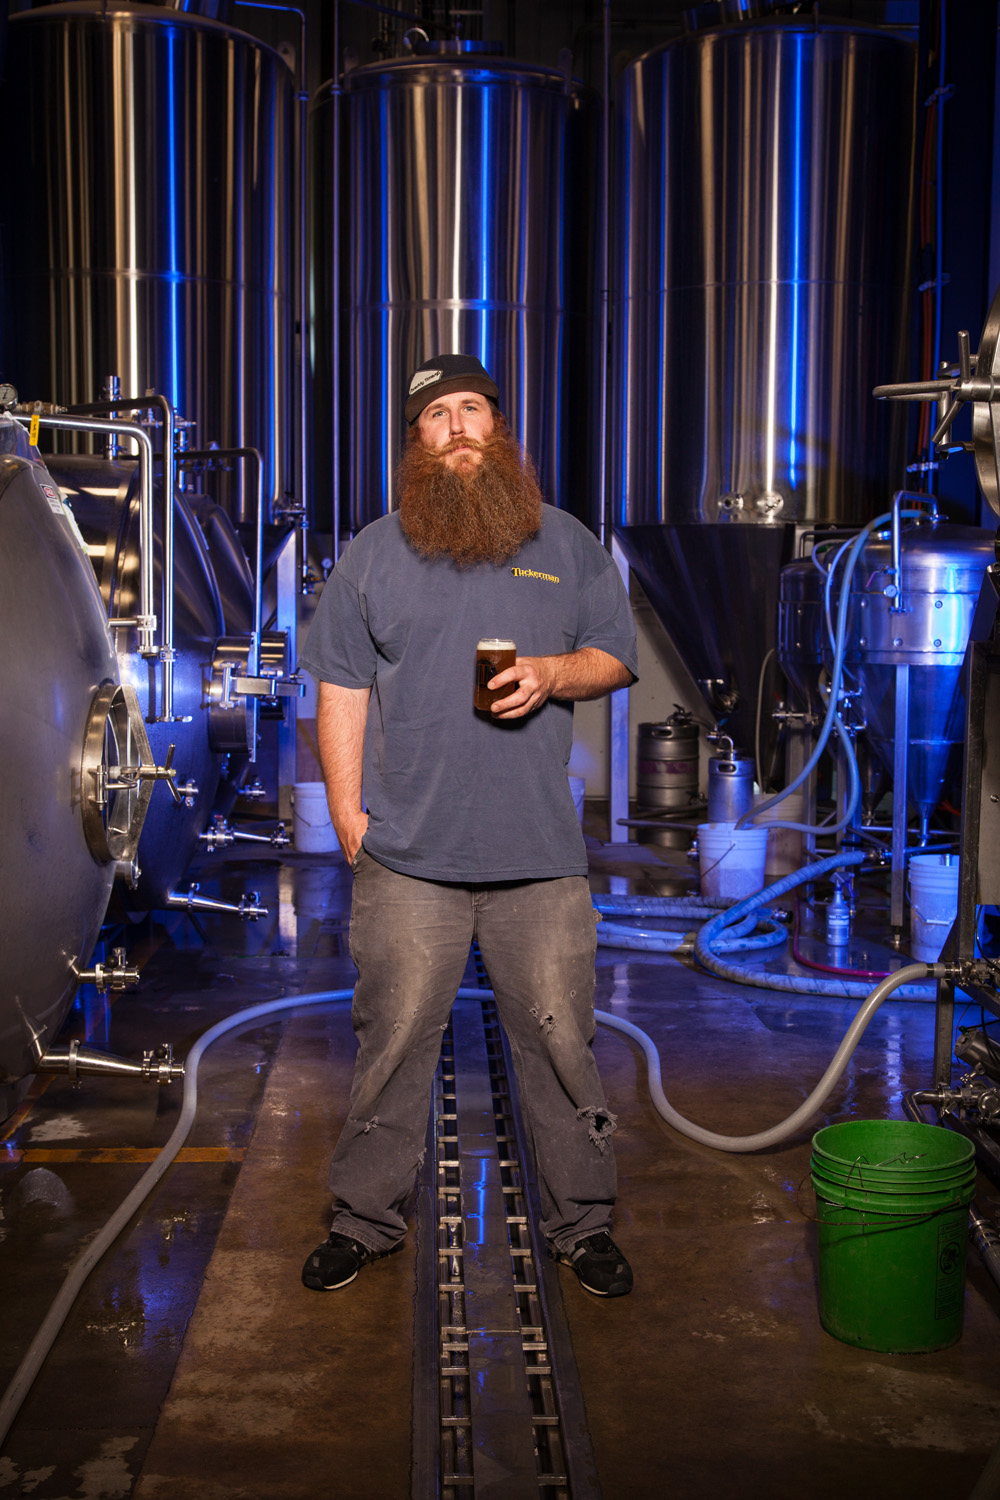 Seth Reidy, Head Brewer at Tuckerman Brewing Co. Conway, NH Established in 1998